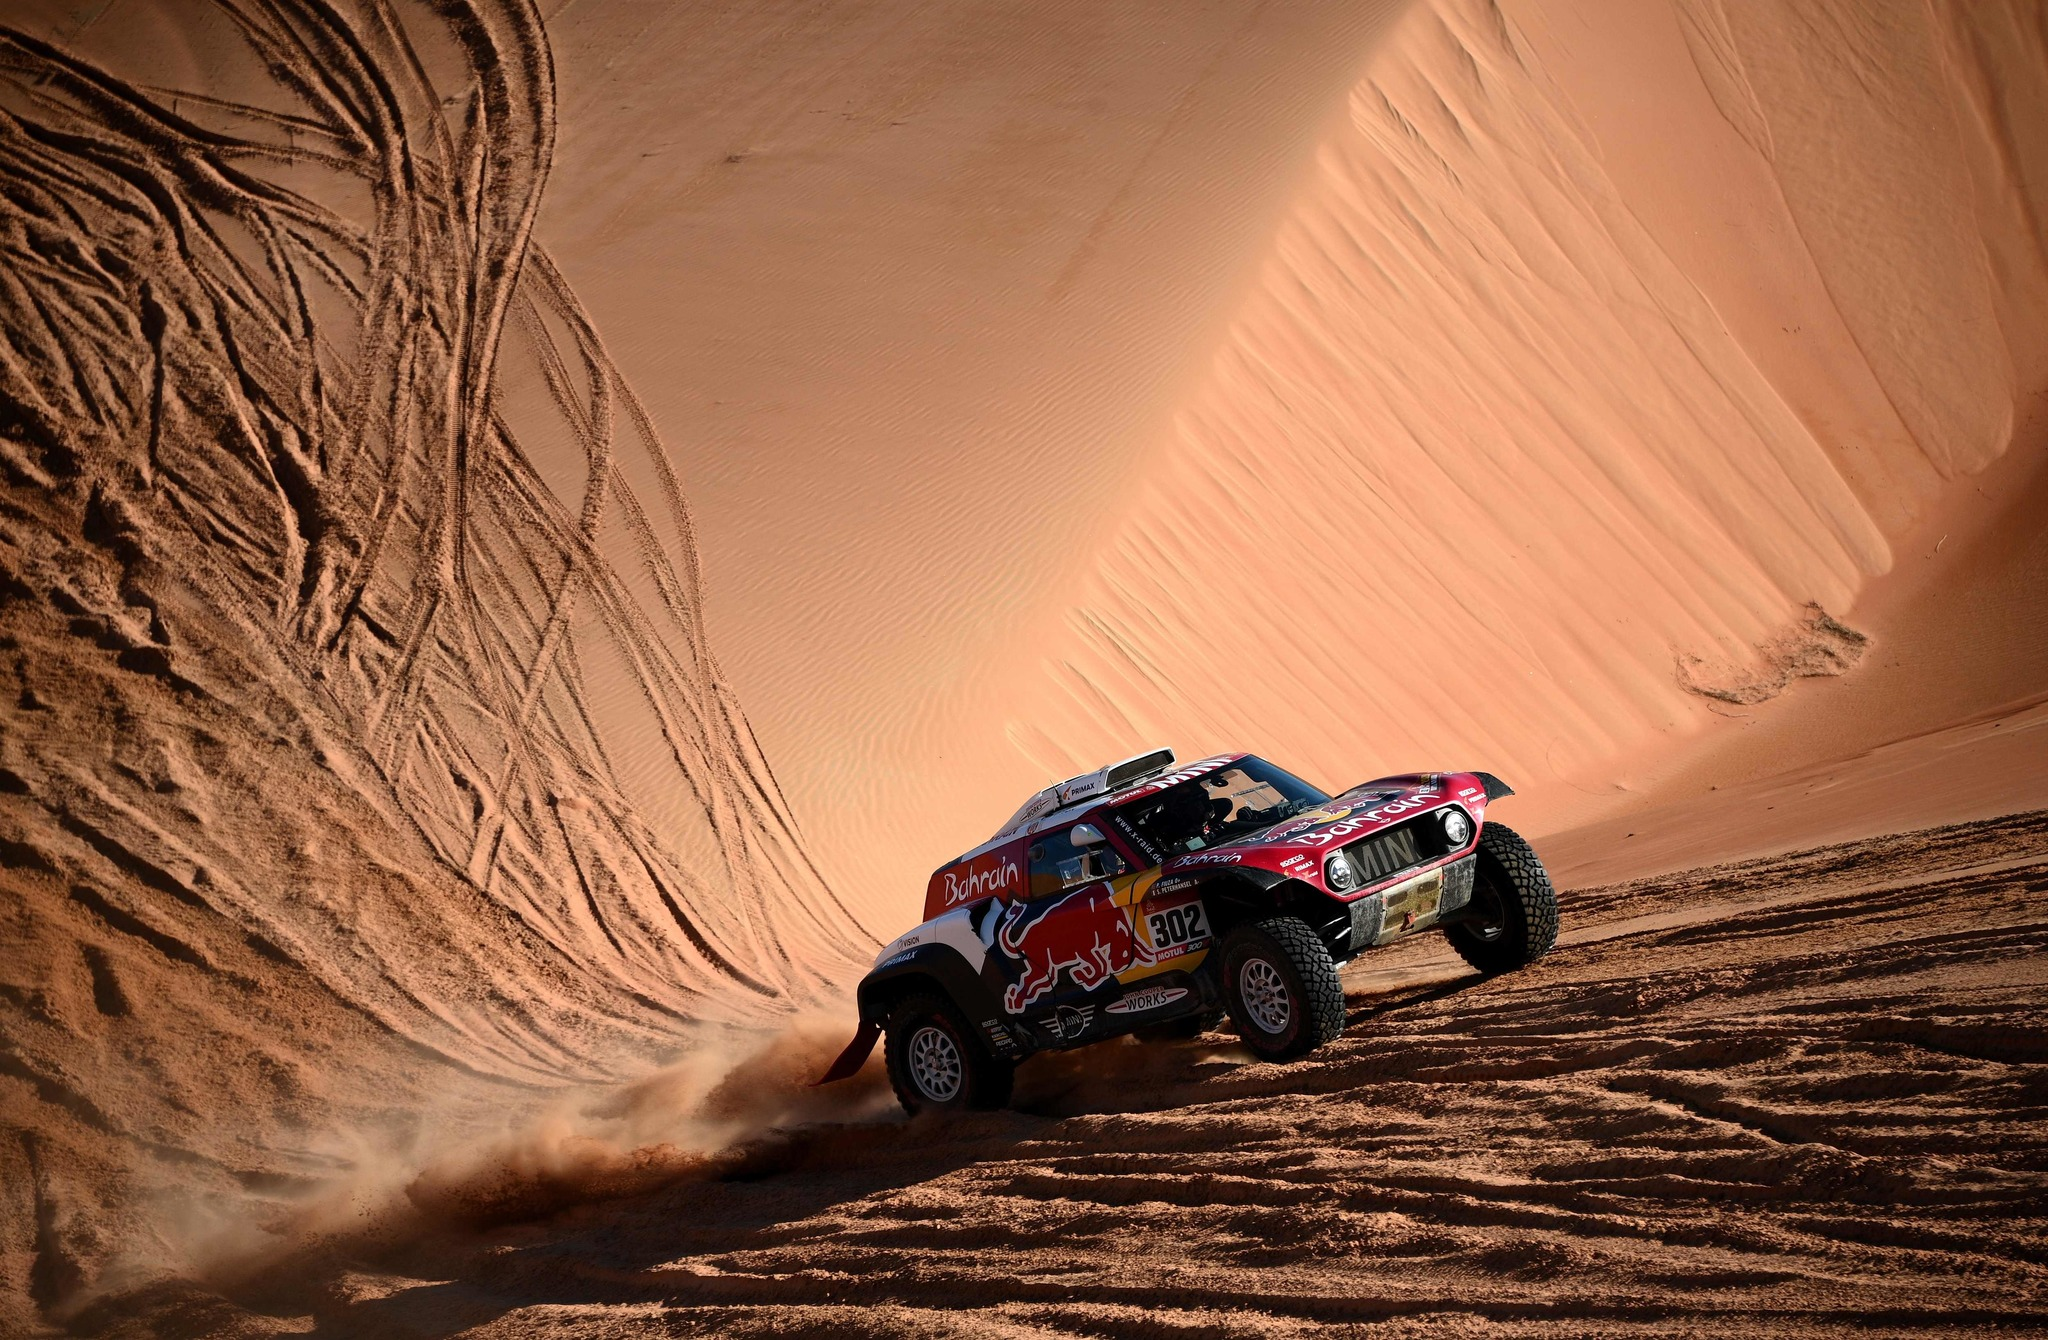 Minis driver Stephane <HIT>Peterhansel</HIT> and his co-driver Portuguese Paulo Fiuza compete during the Stage 11 of the Dakar 2020 between Shubaytah and Haradh, Saudi Arabia, on January 16, 2020. (Photo by FRANCK FIFE / AFP)